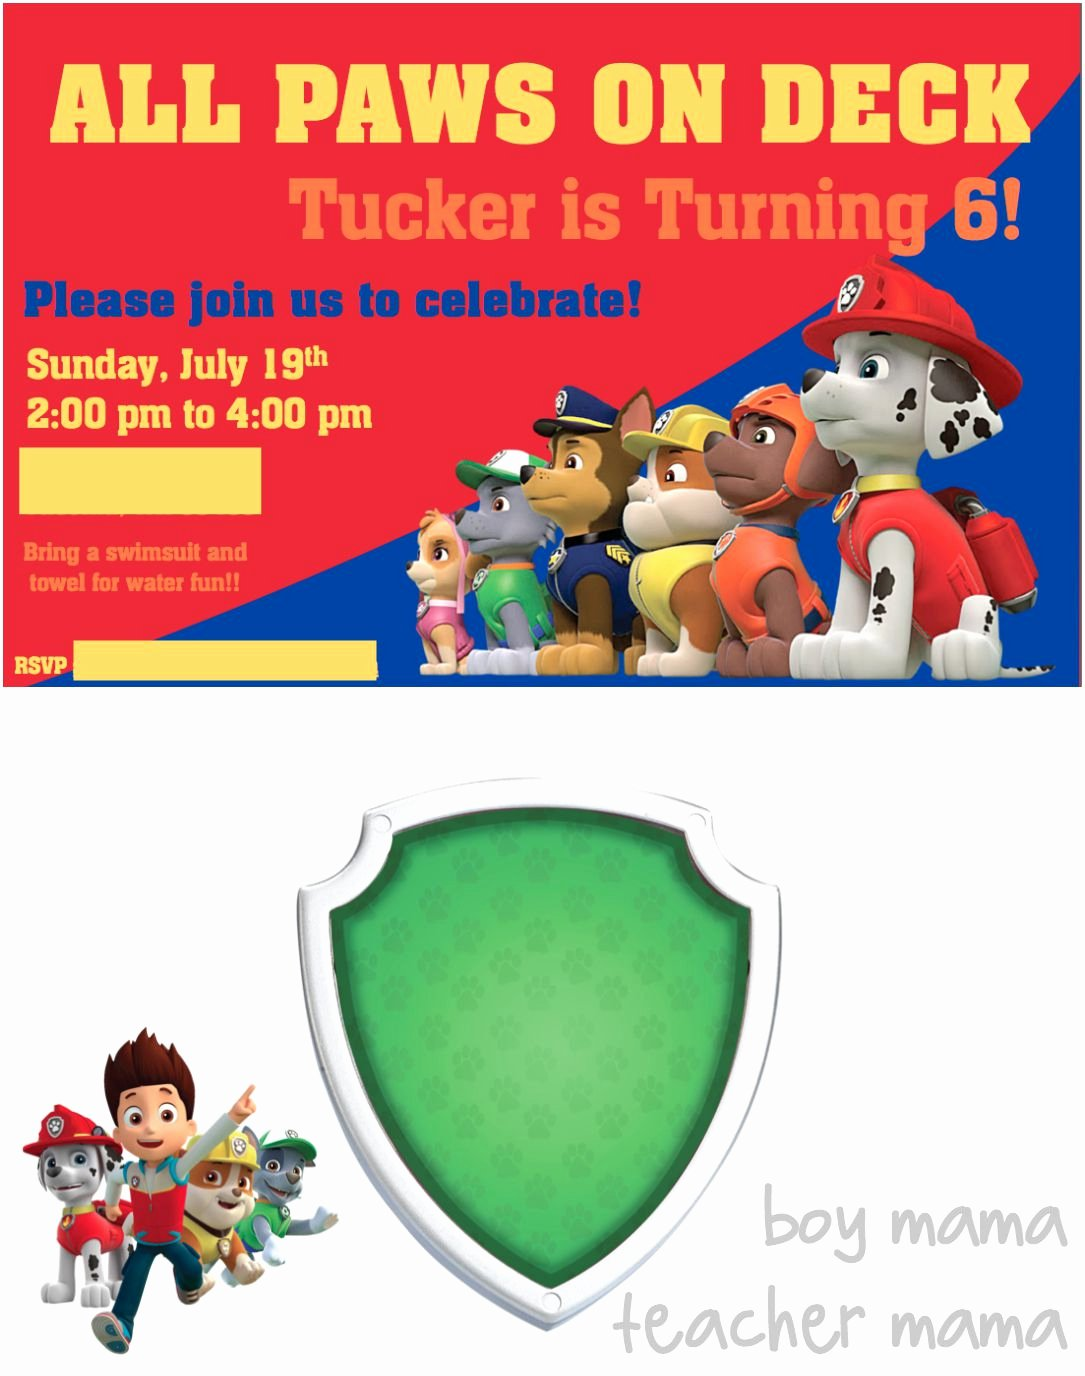 Paw Patrol Invitation Template Free Awesome Paw Patrol Birthday Party Boy Mama Teacher Mama